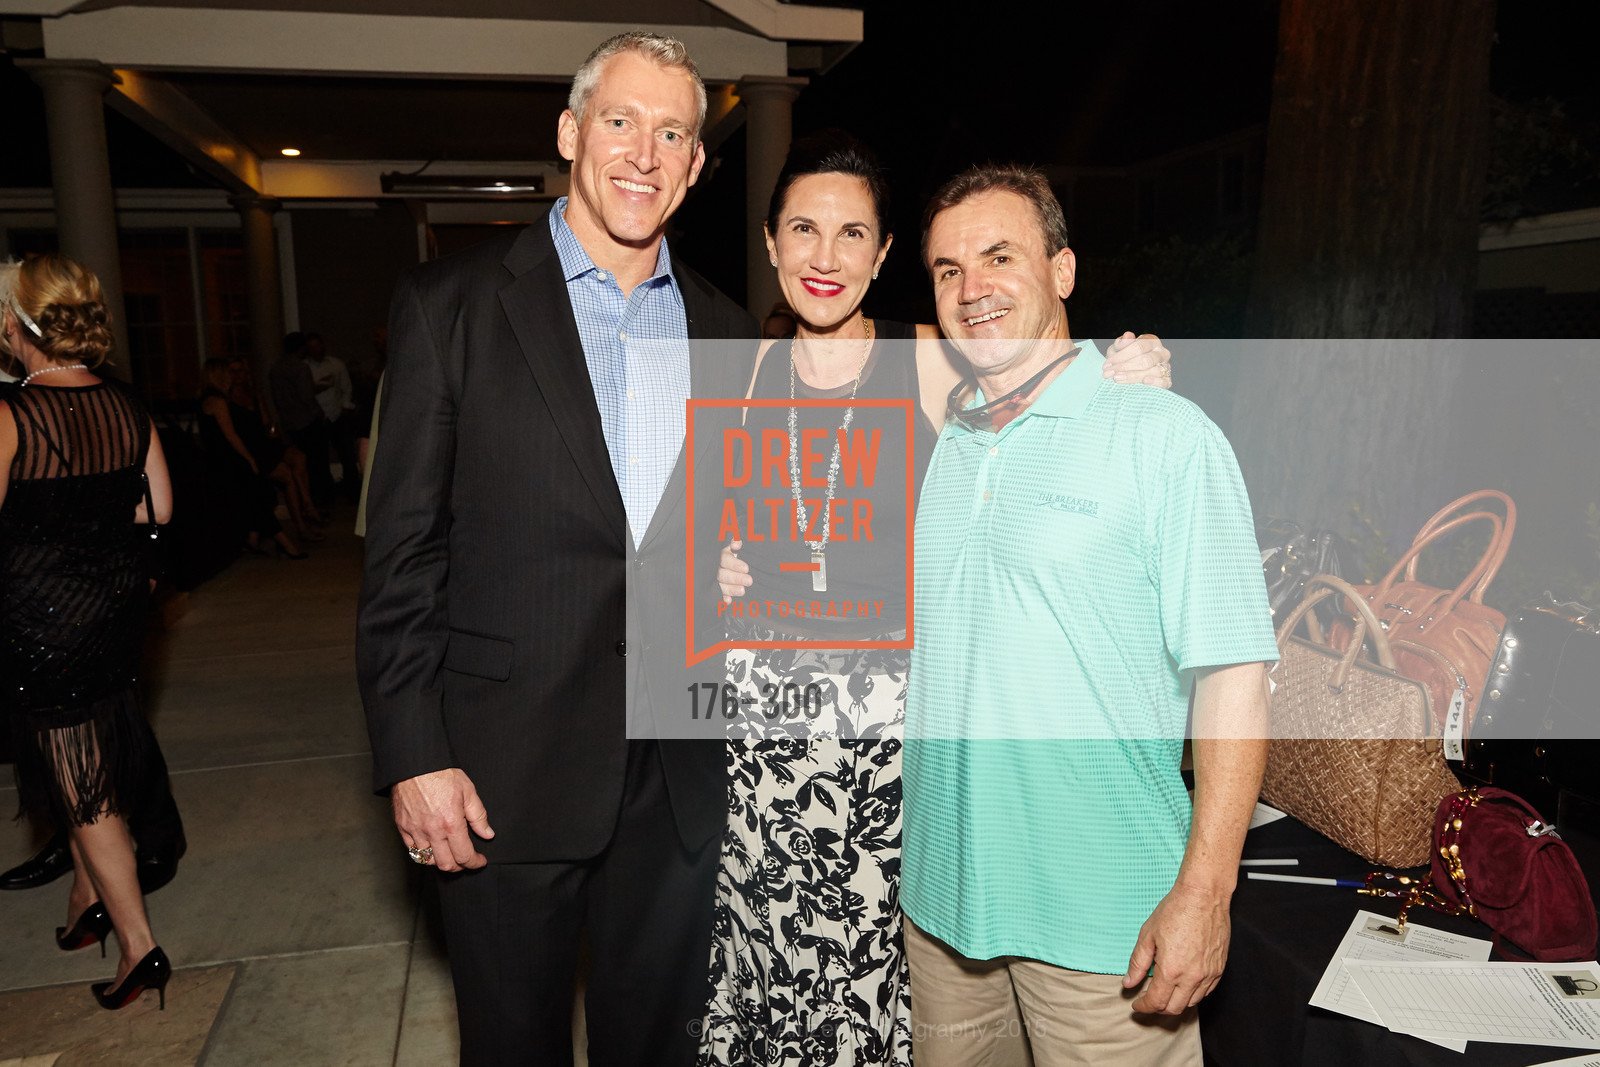 Robert Millard, Stephanie Hacker, Mark Rogers, Breast Cancer Awareness Fund Presents This Old Bag Silicon Valley Preview Party, Private Residence, September 19th, 2015,Drew Altizer, Drew Altizer Photography, full-service agency, private events, San Francisco photographer, photographer california